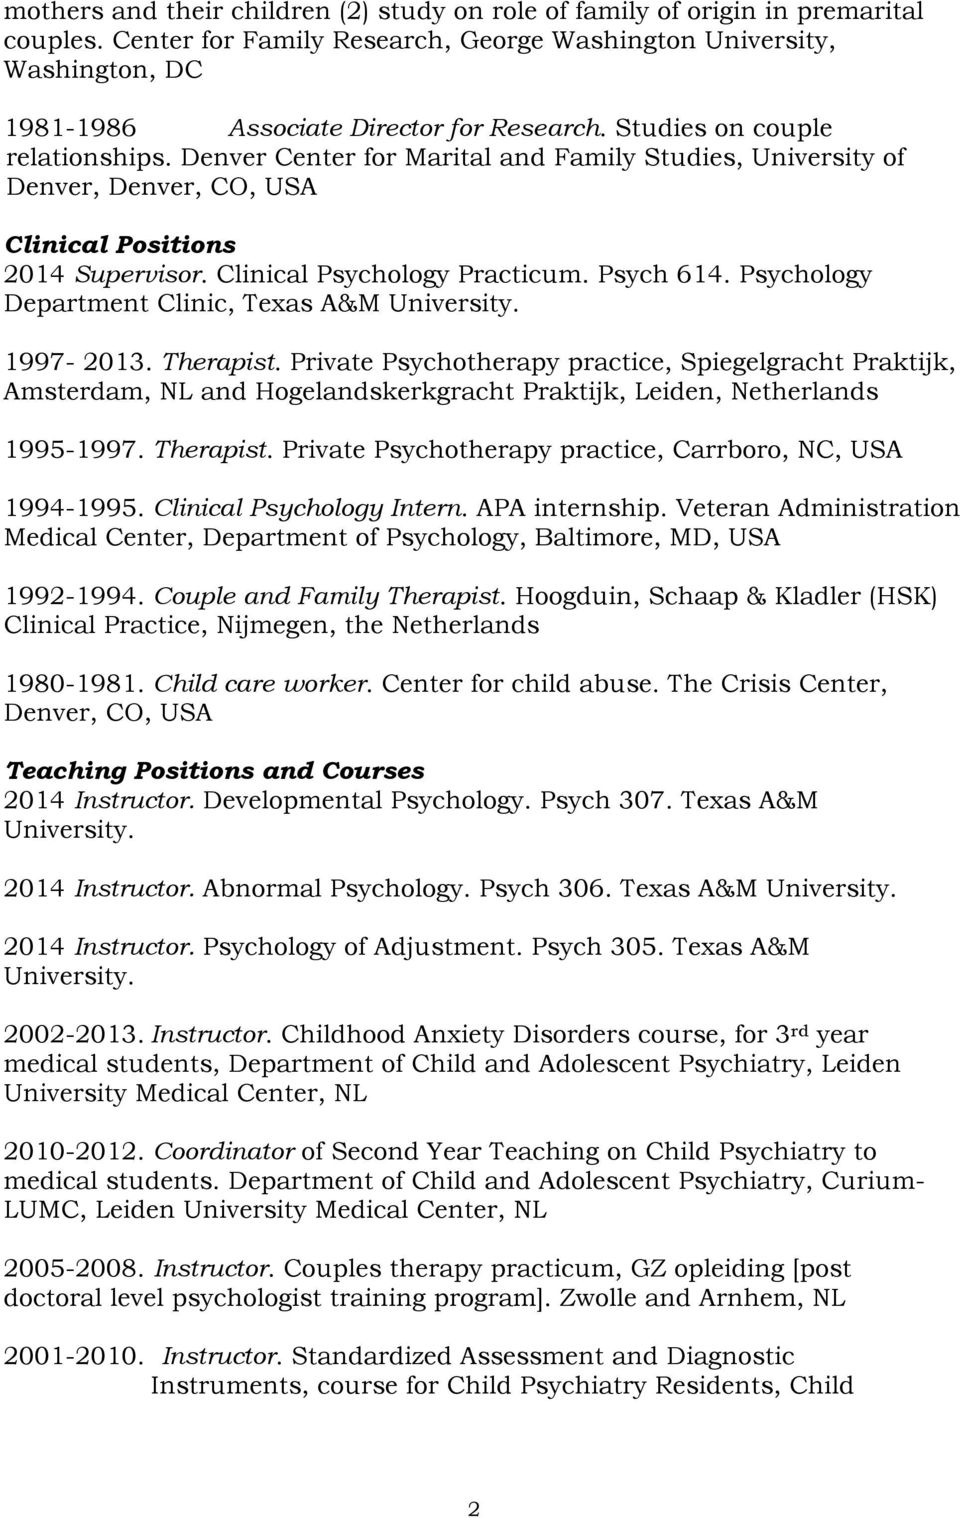 texas a&m theses and dissertations